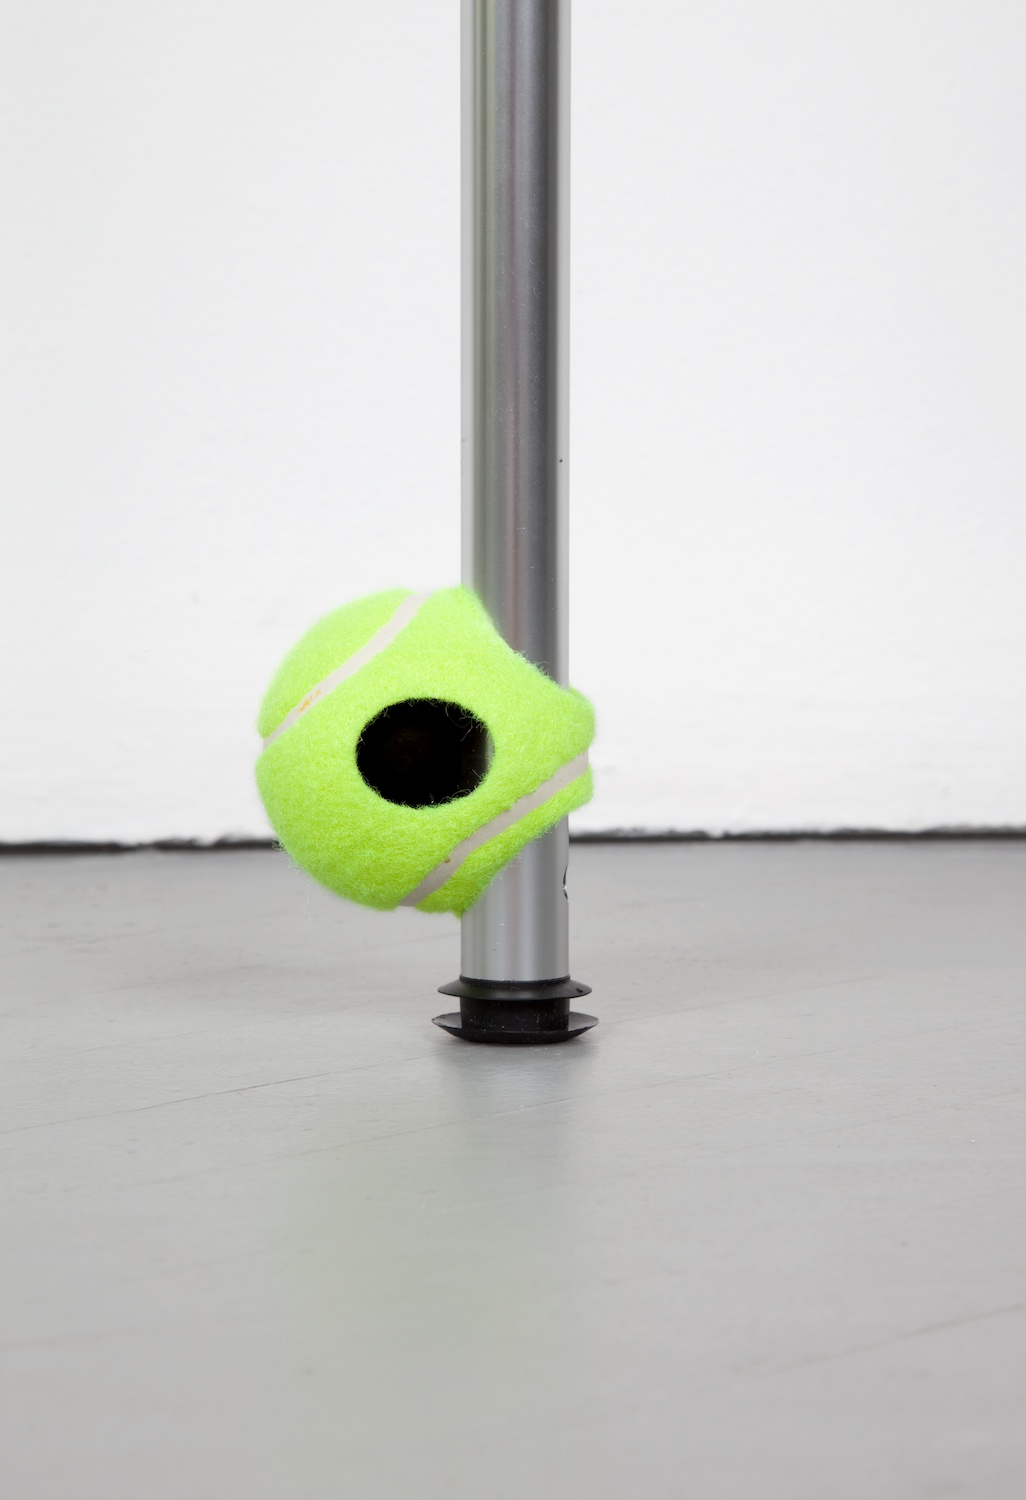 Chadwick Rantanen  Telescopic Pole (Three Hole EZ Glide / Never GIve Up / 03)  (Detail) 2012 Powdercoated aluminum, plastic, walkerballs 300h x 1 ½w in  CR028